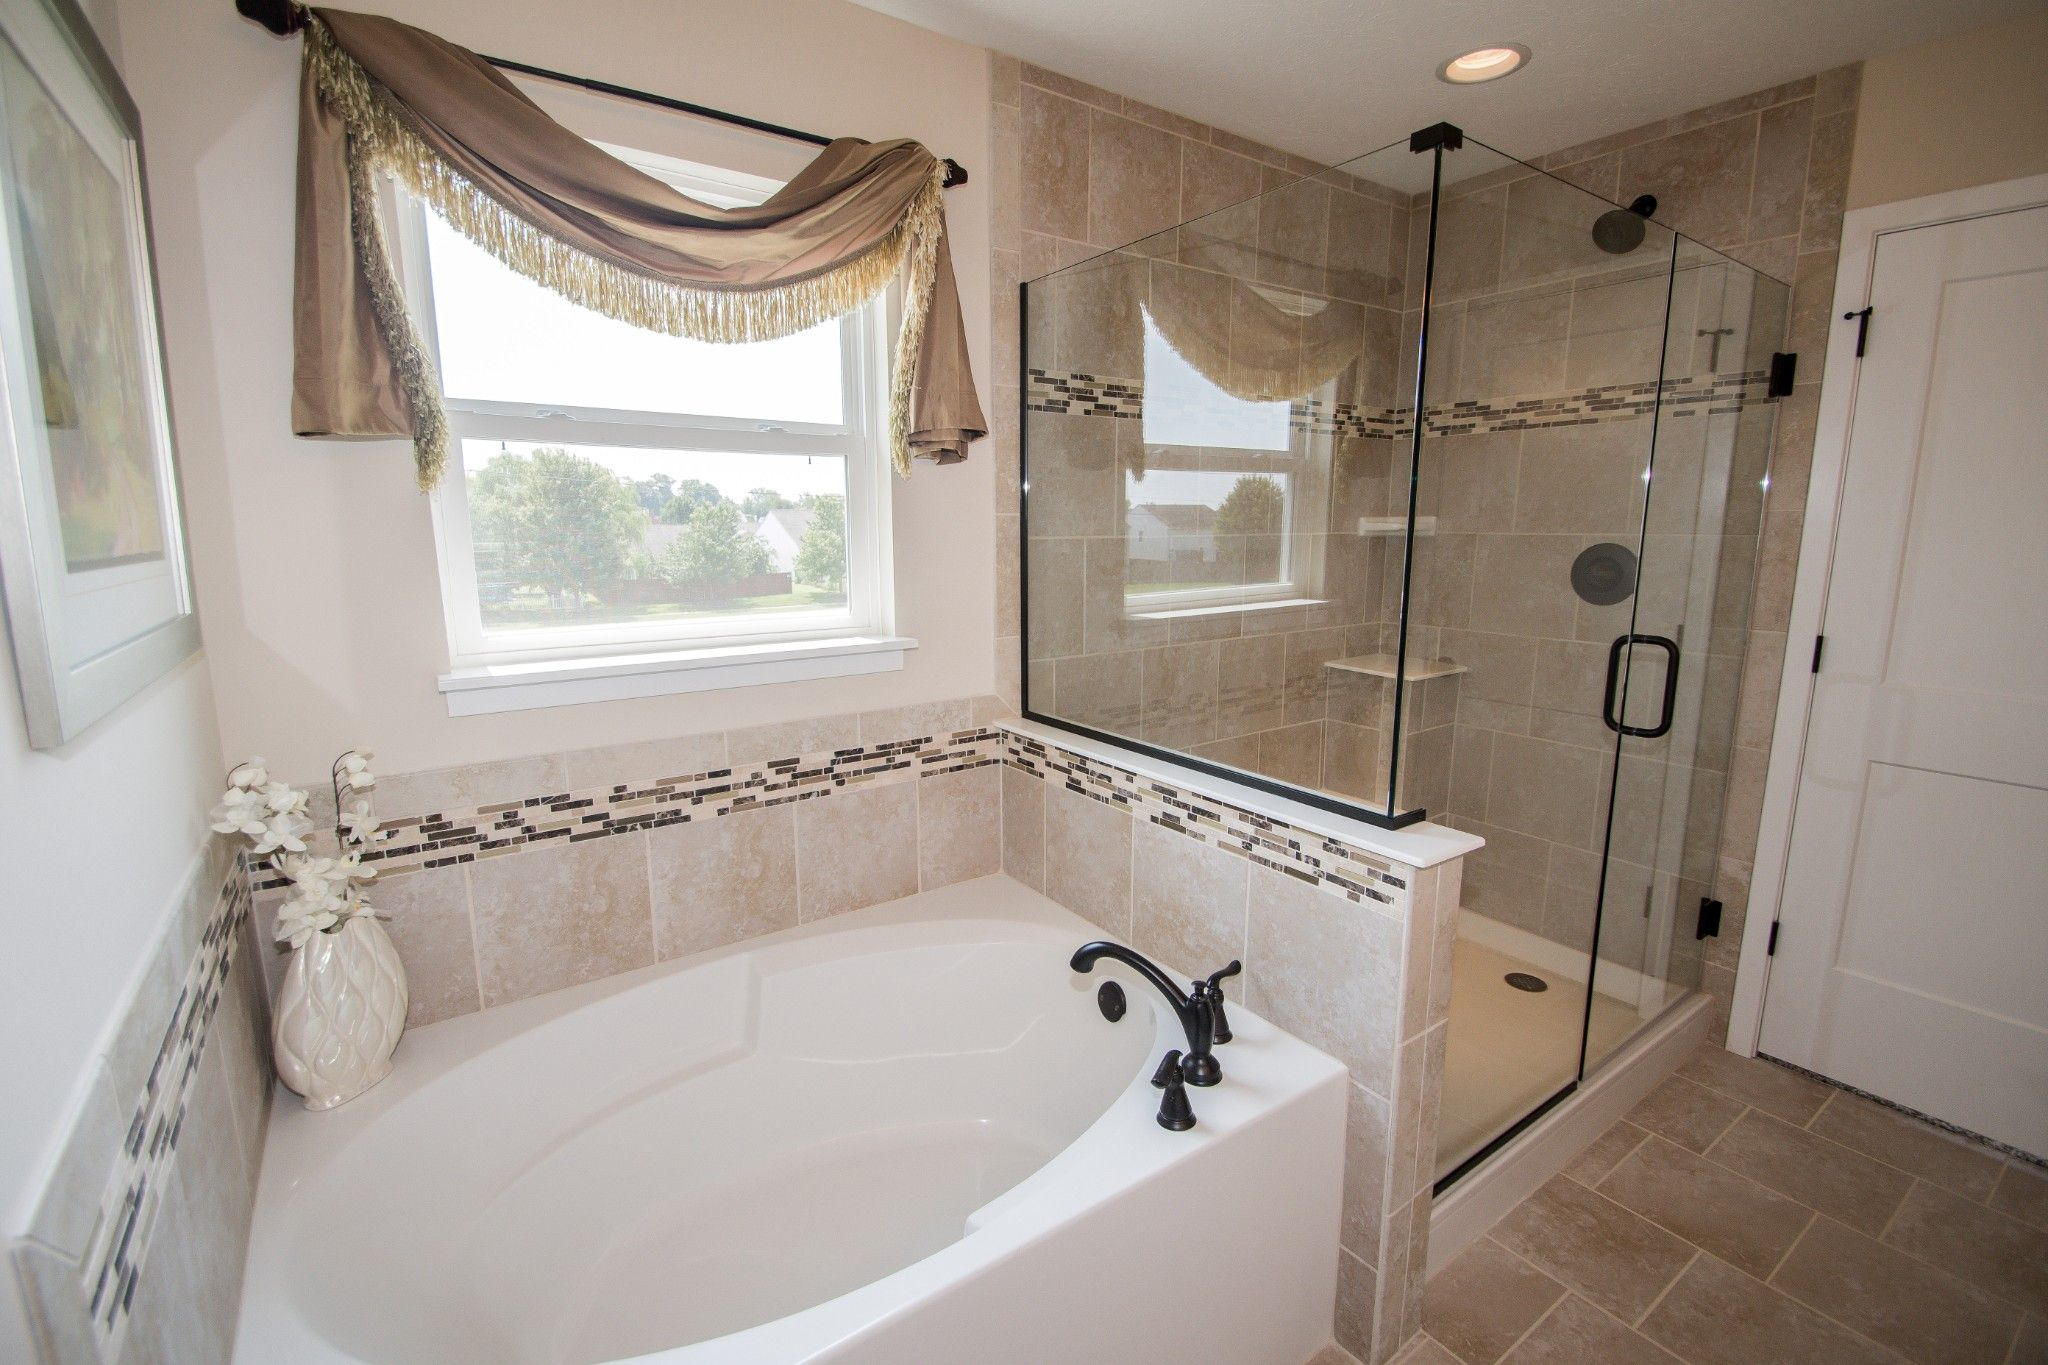 Bathroom featured in the Preston By Olthof Homes in Fort Wayne, IN